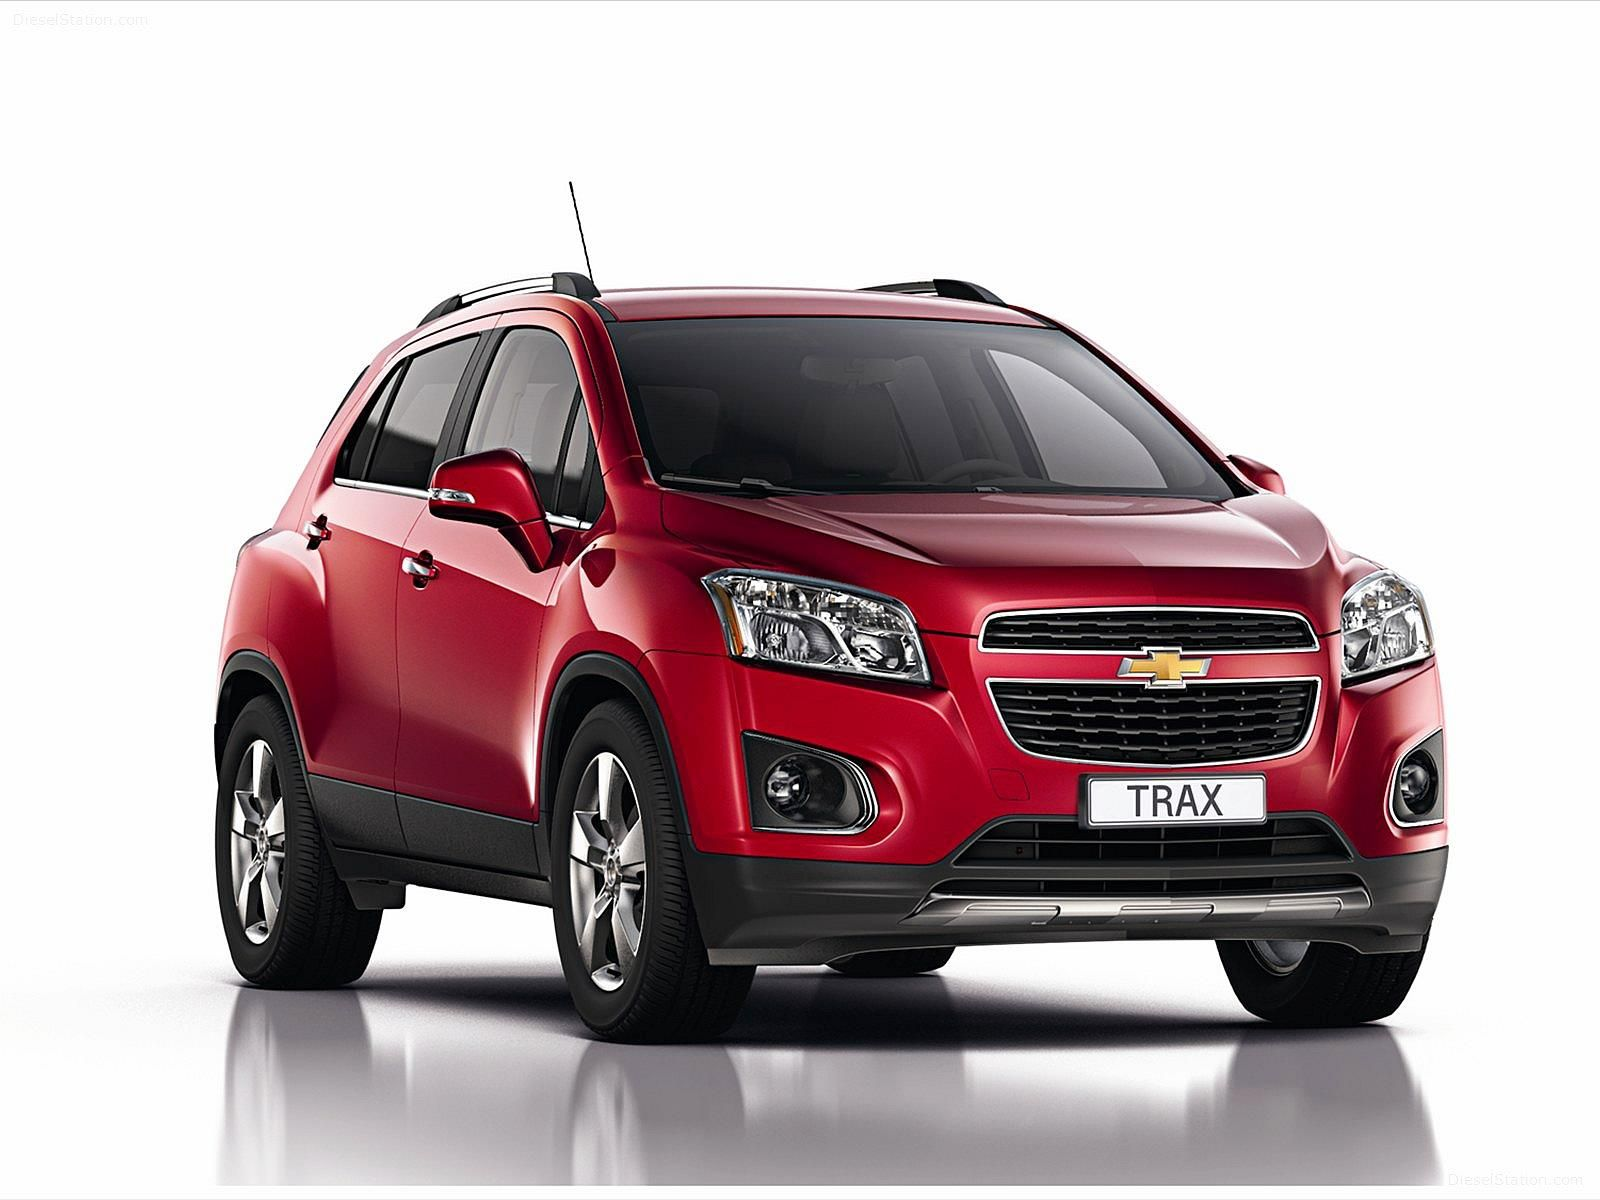 Chevrolet Plans To Launch The Compact Suv Trax In India By 2014 This Mini Suv Was First Showcased At The Paris Motor Show Chevrolet Trax Small Suv Compact Suv